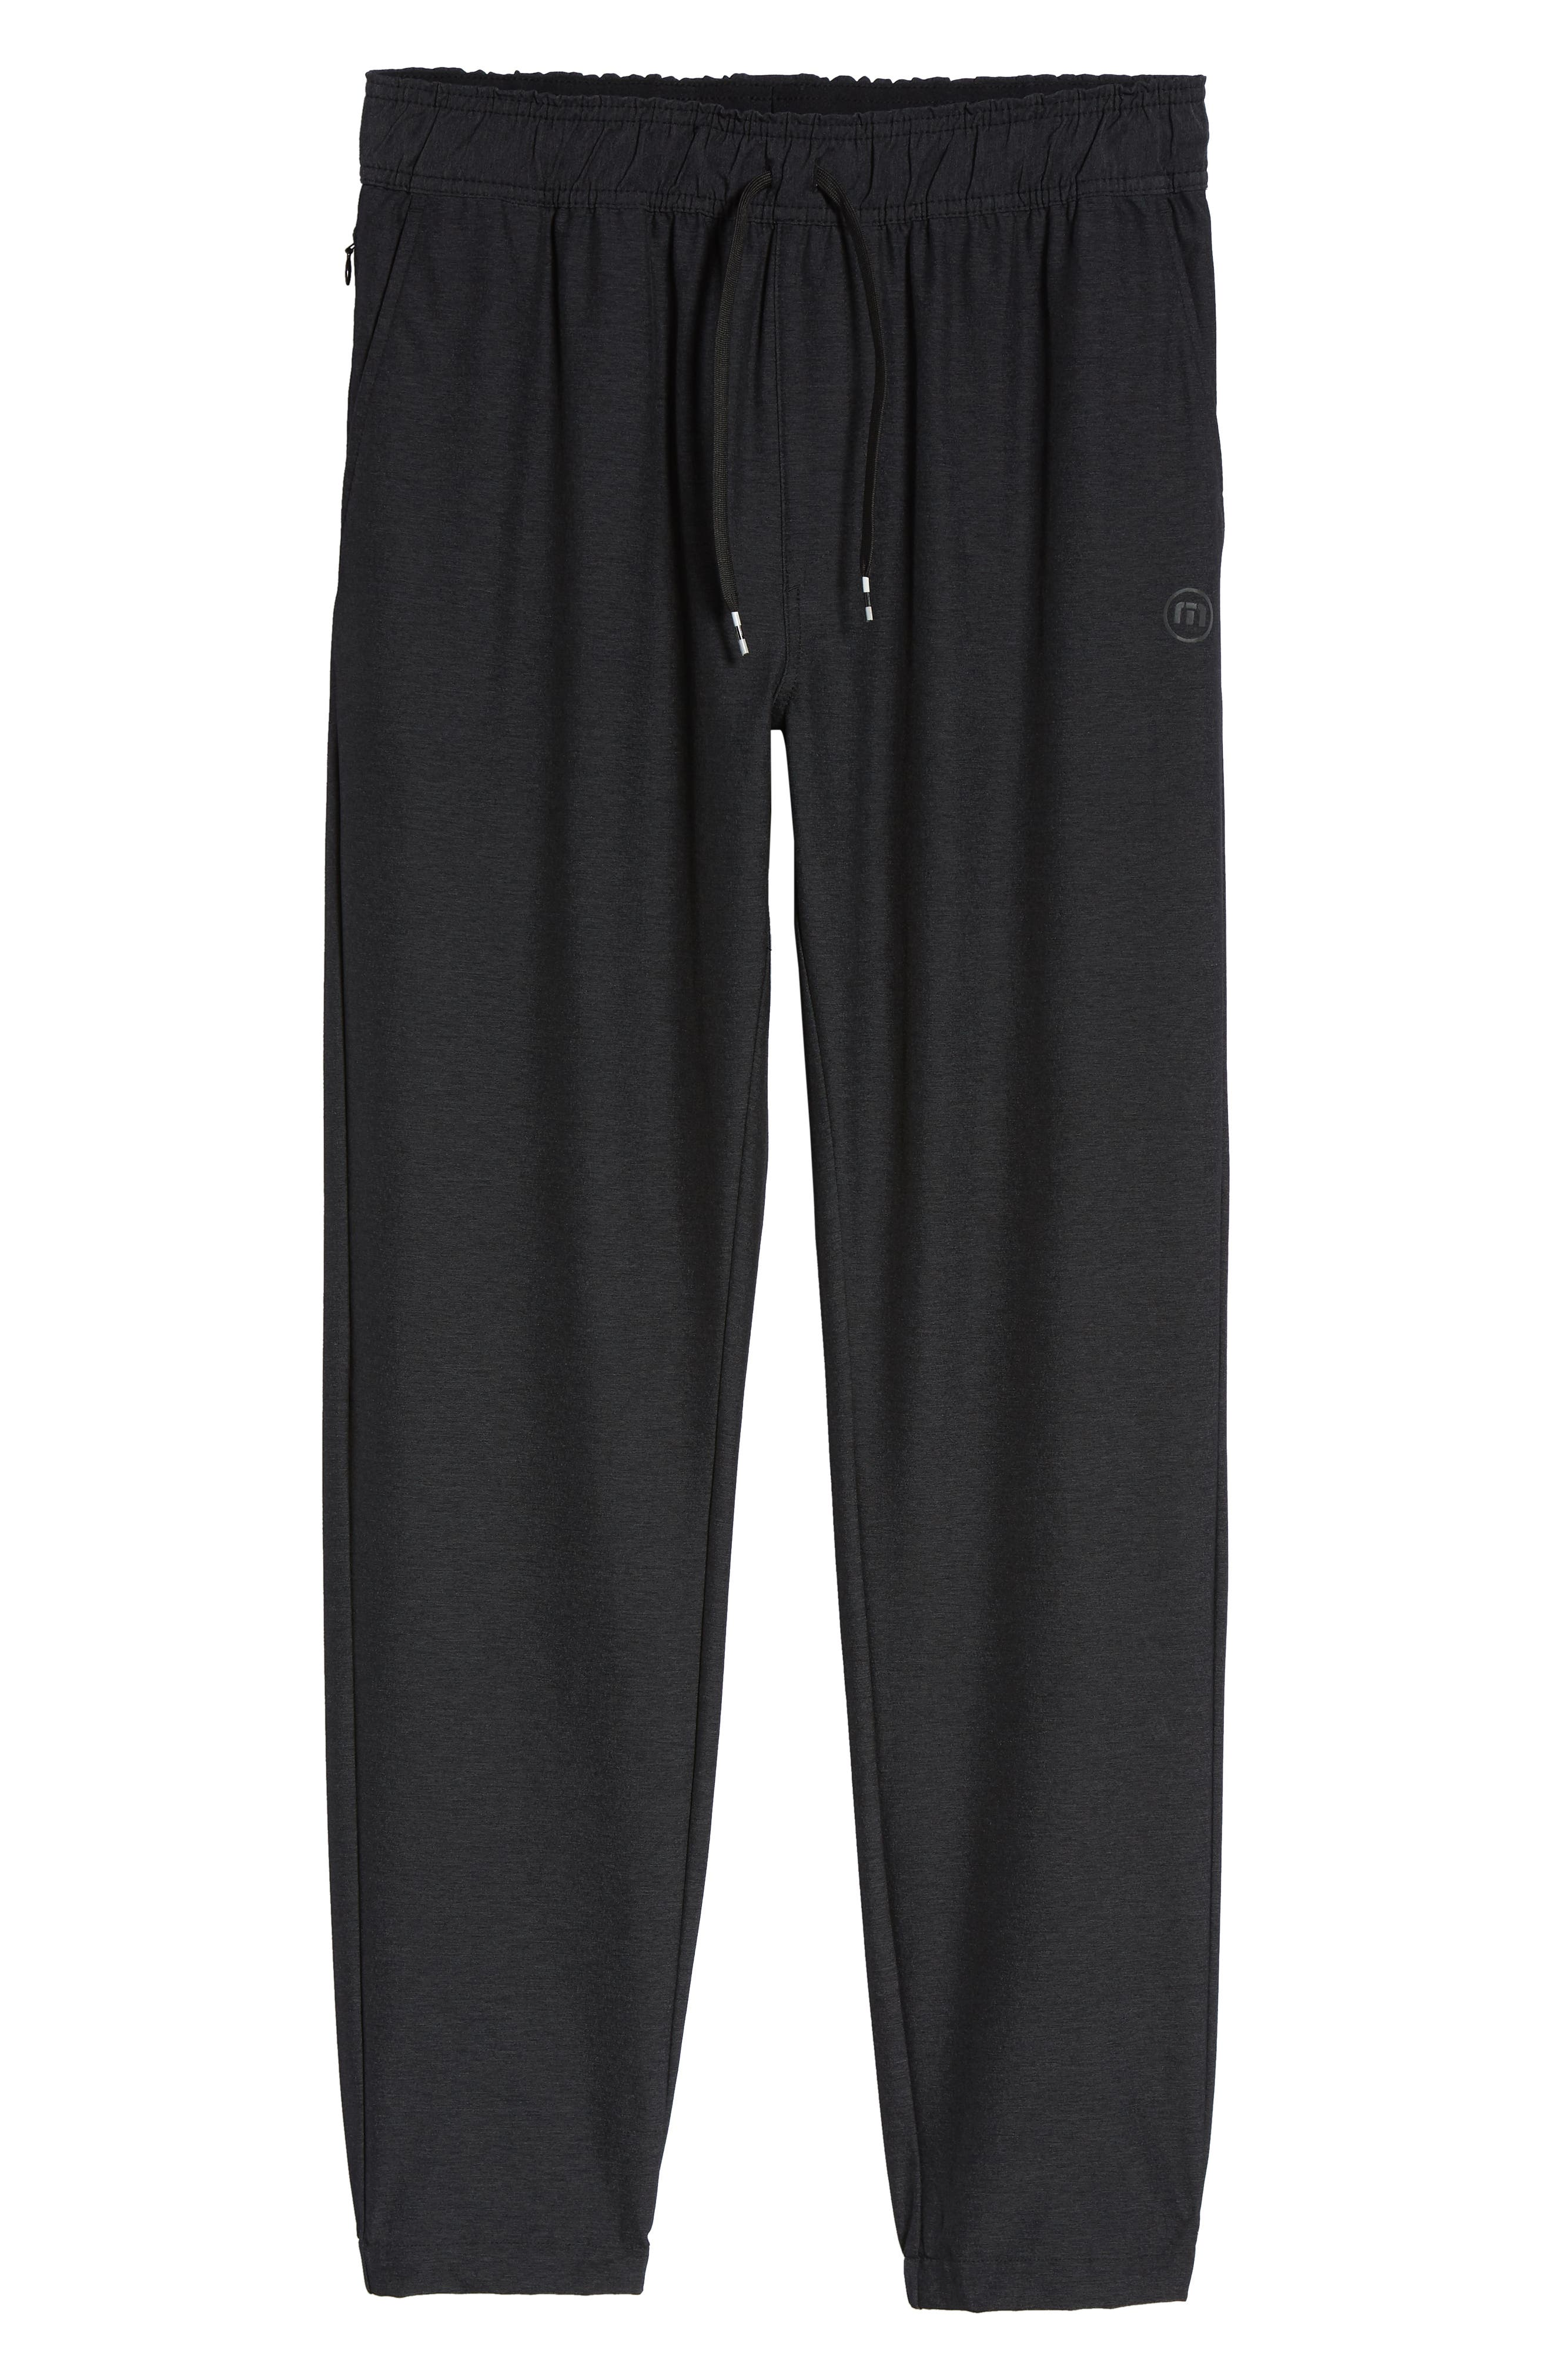 Relay Lounge Pants,                             Alternate thumbnail 6, color,